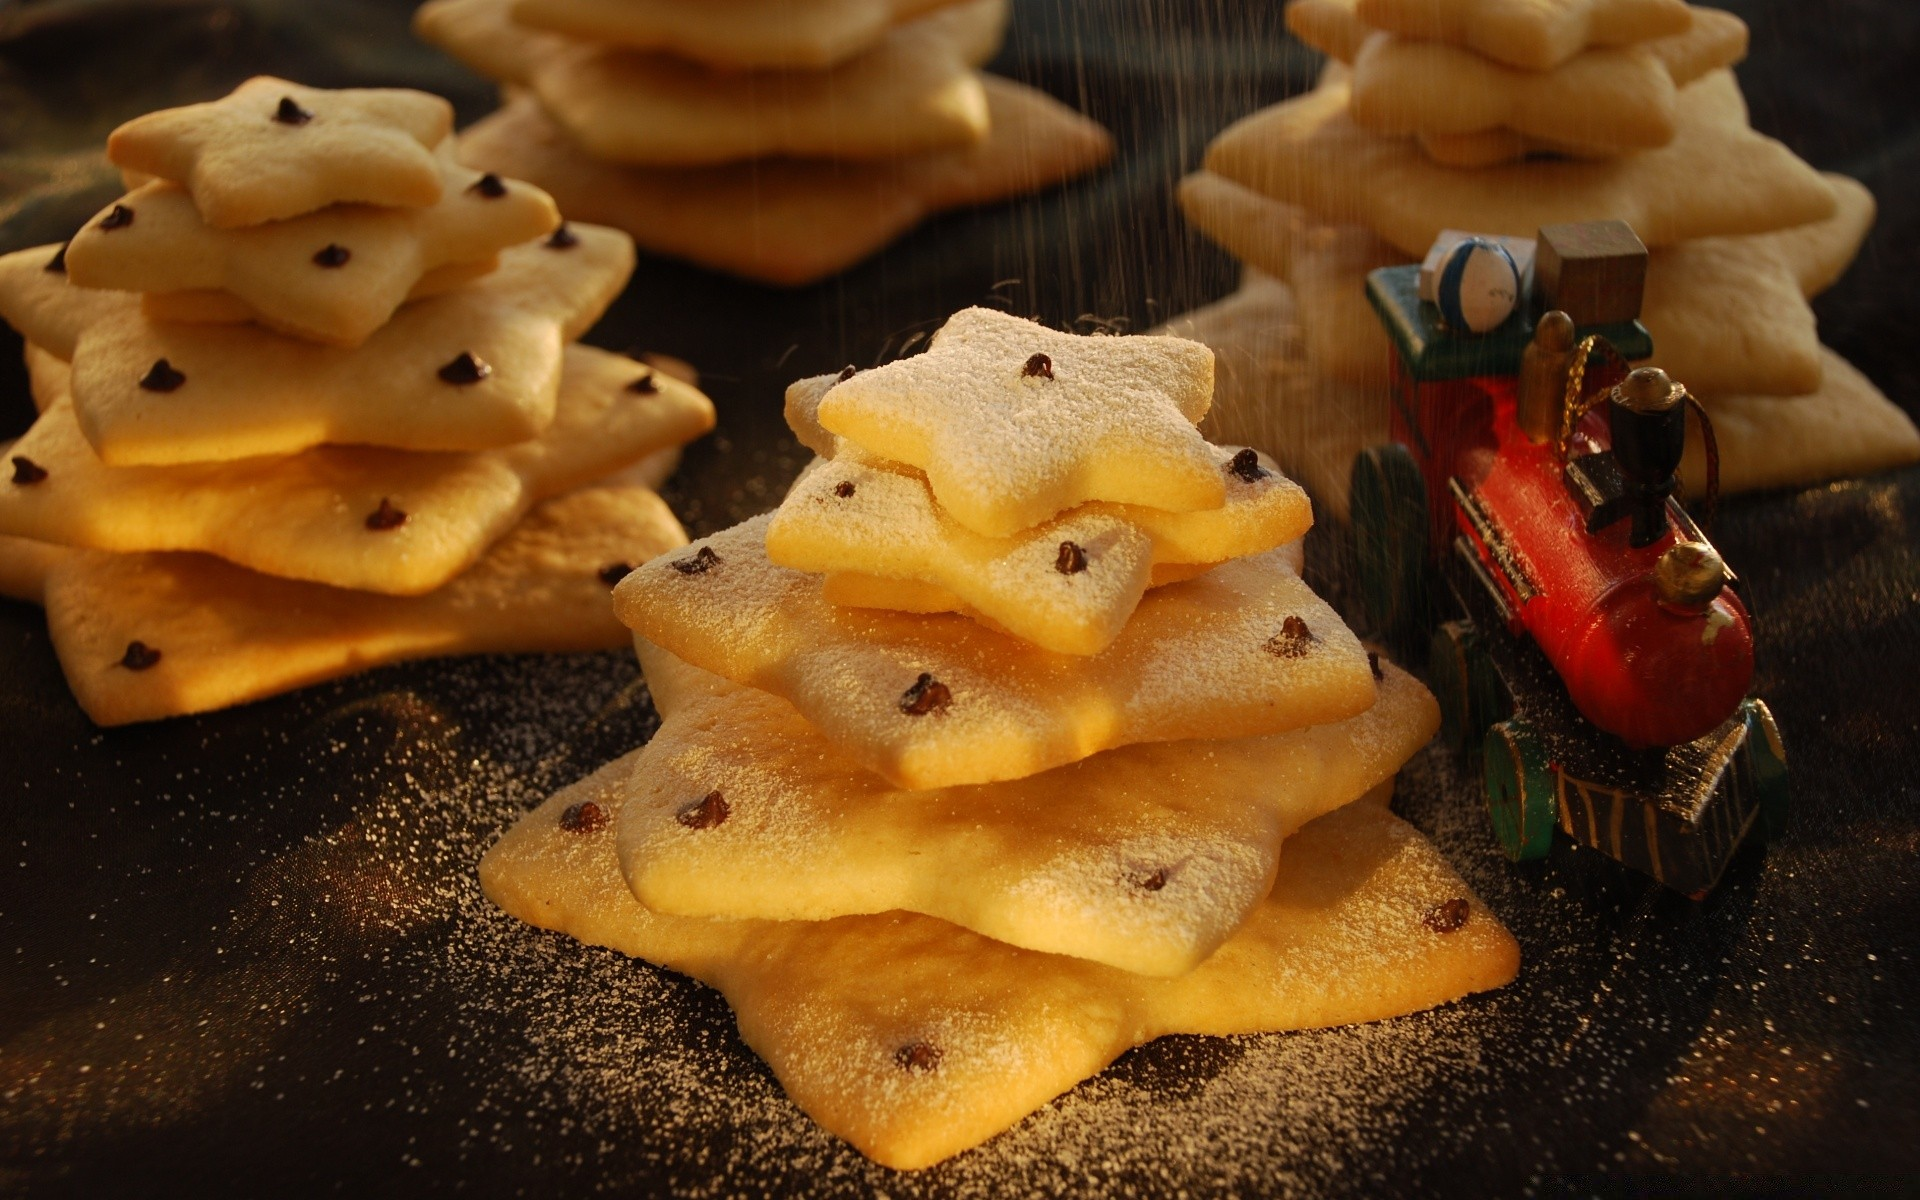 christmas food homemade cookie sweet delicious sugar pastry refreshment baking cake cooking meal